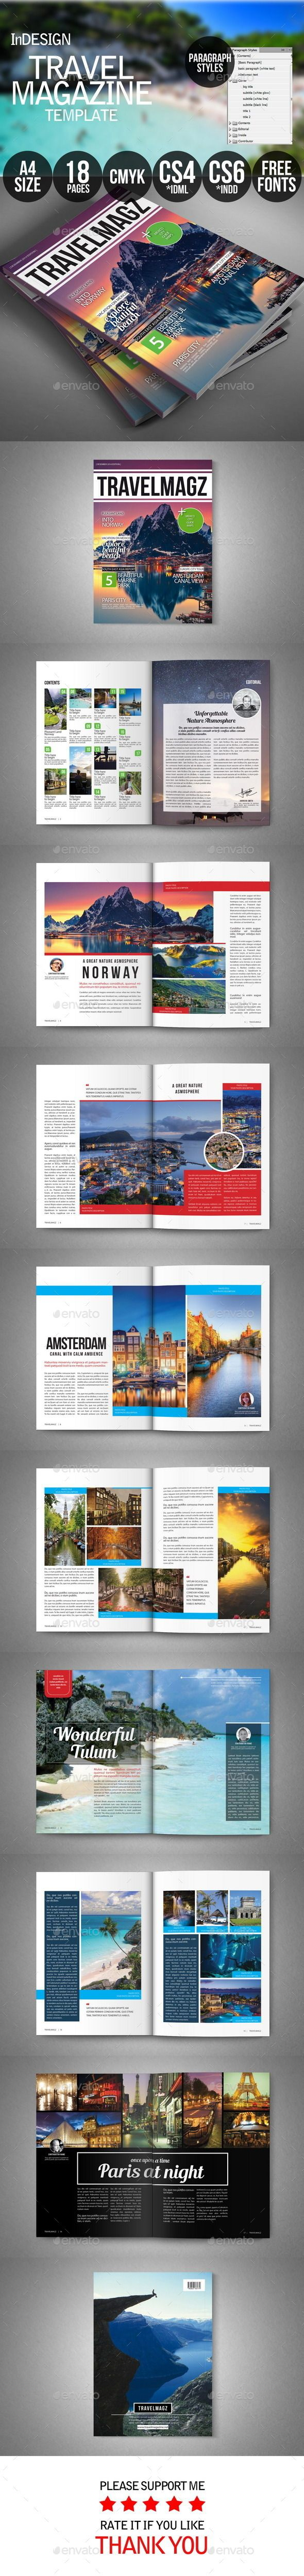 Travel Magazine Template | Download: http://graphicriver.net/item/travel-magazine/9721353?ref=ksioks